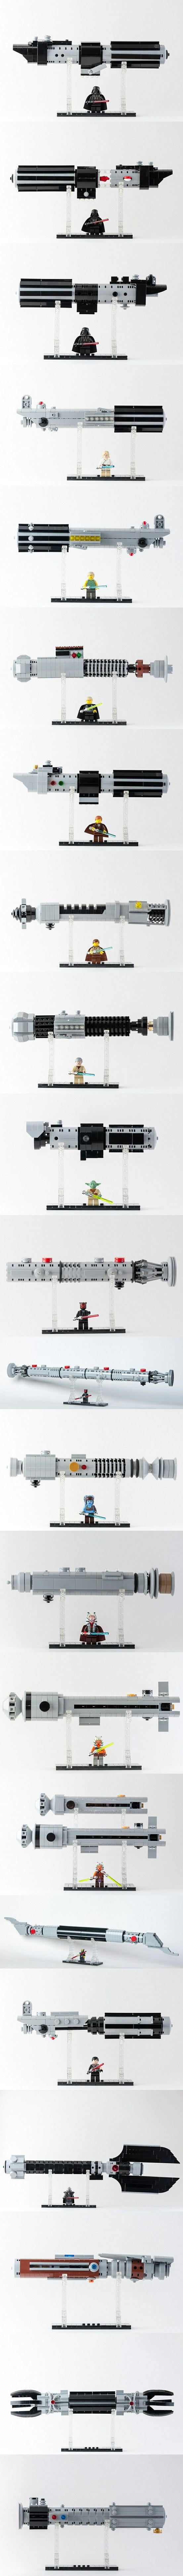 LEGO Star Wars Exposed Lightsabers LIKE IT? FOLLOW ME! Thanks! #LEGO #StarWars #Lightsaber